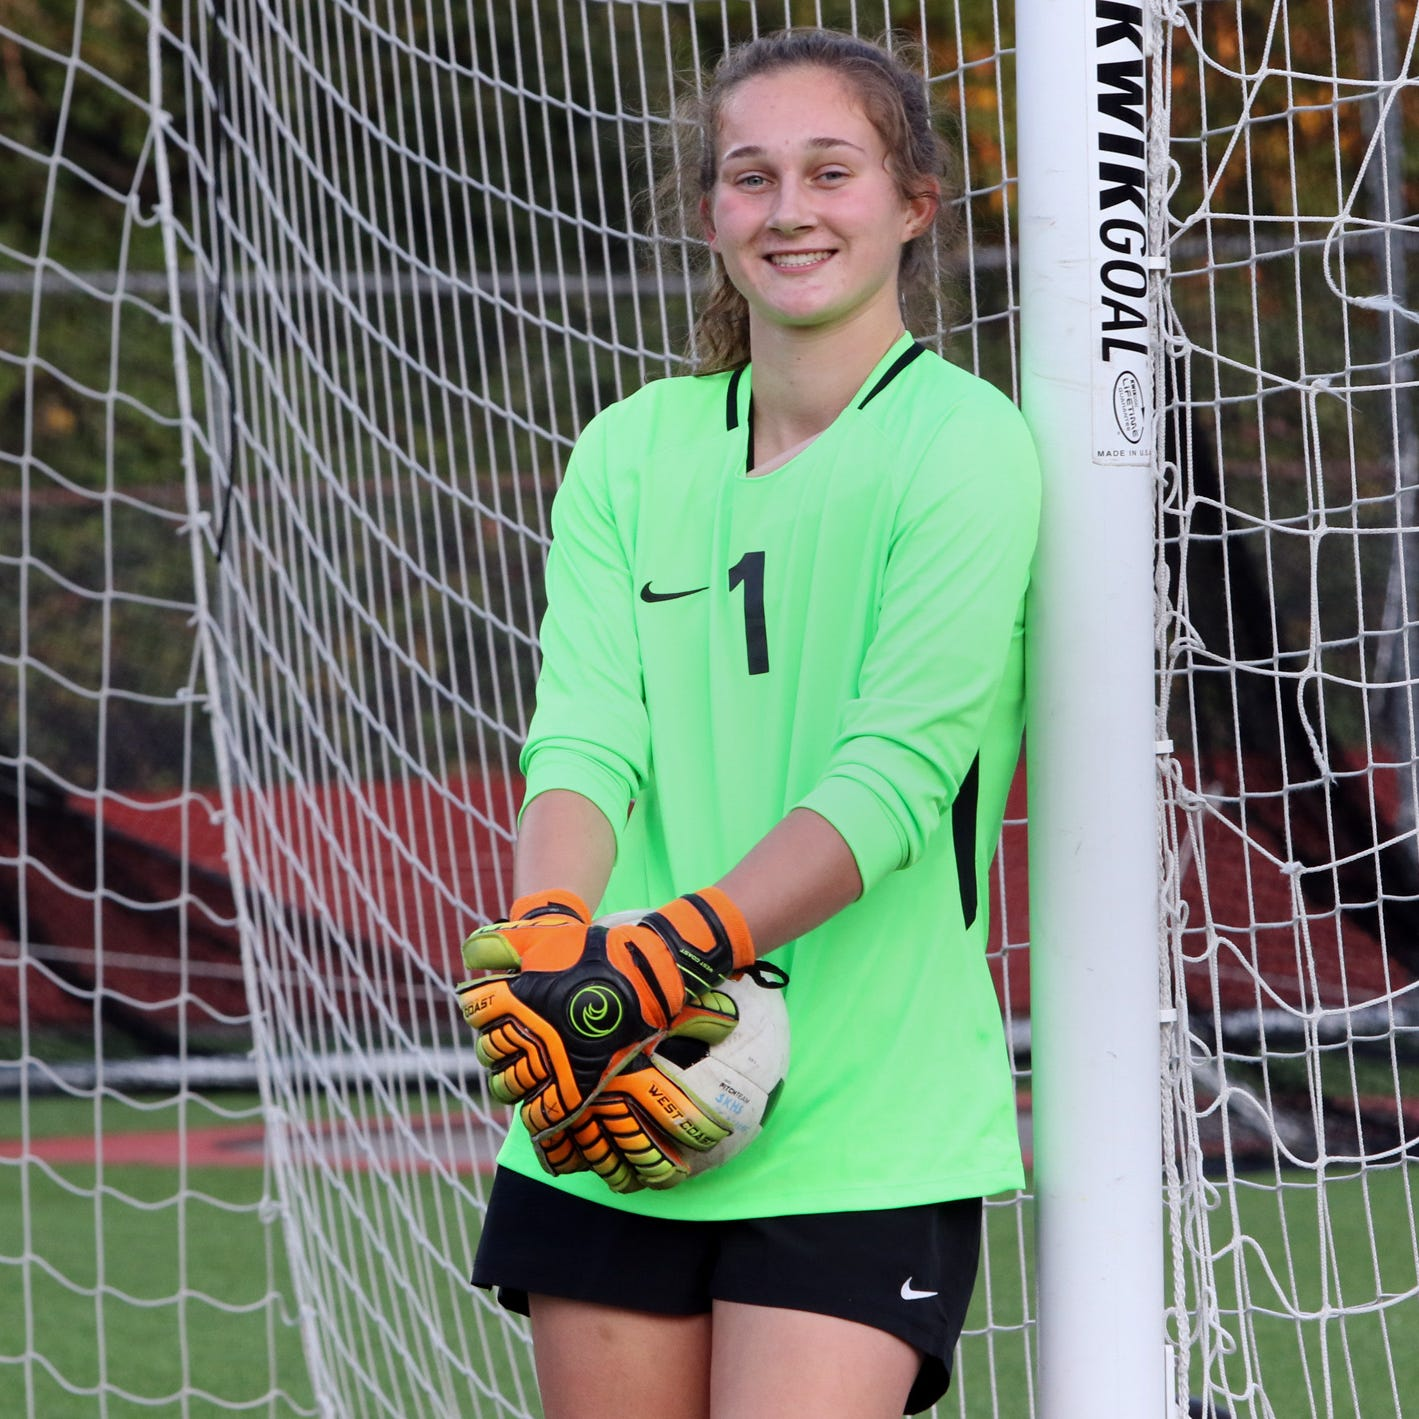 South Kitsap goalkeeper Nail riding high after dirt bike crash